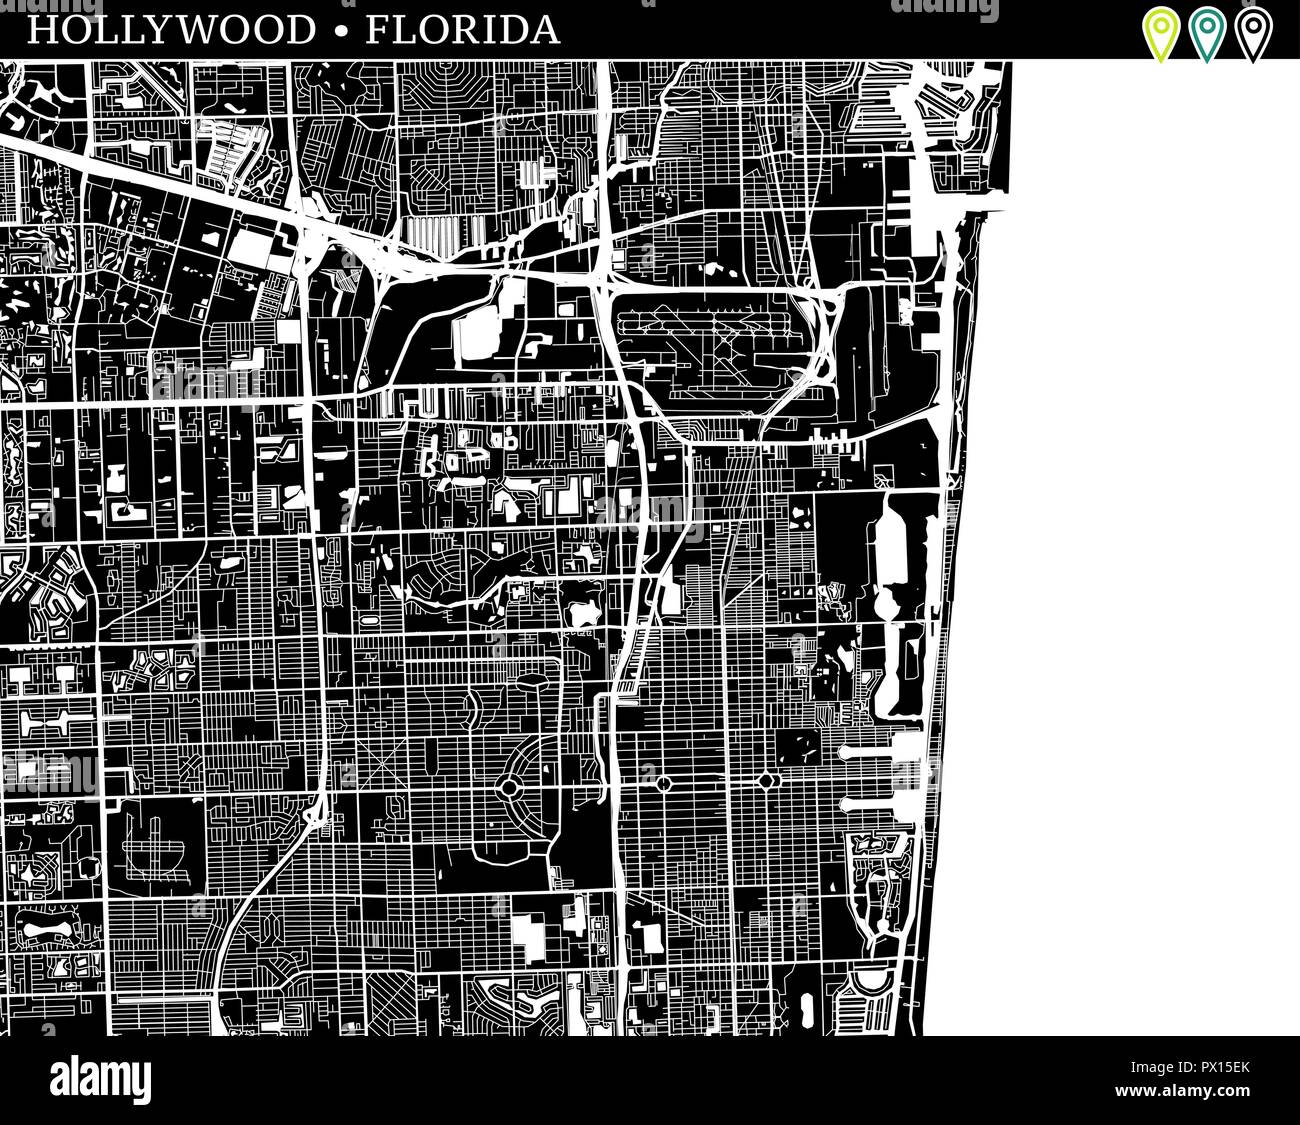 Hollywood Florida Map.Simple Map Of Hollywood Florida Usa Black And White Version For